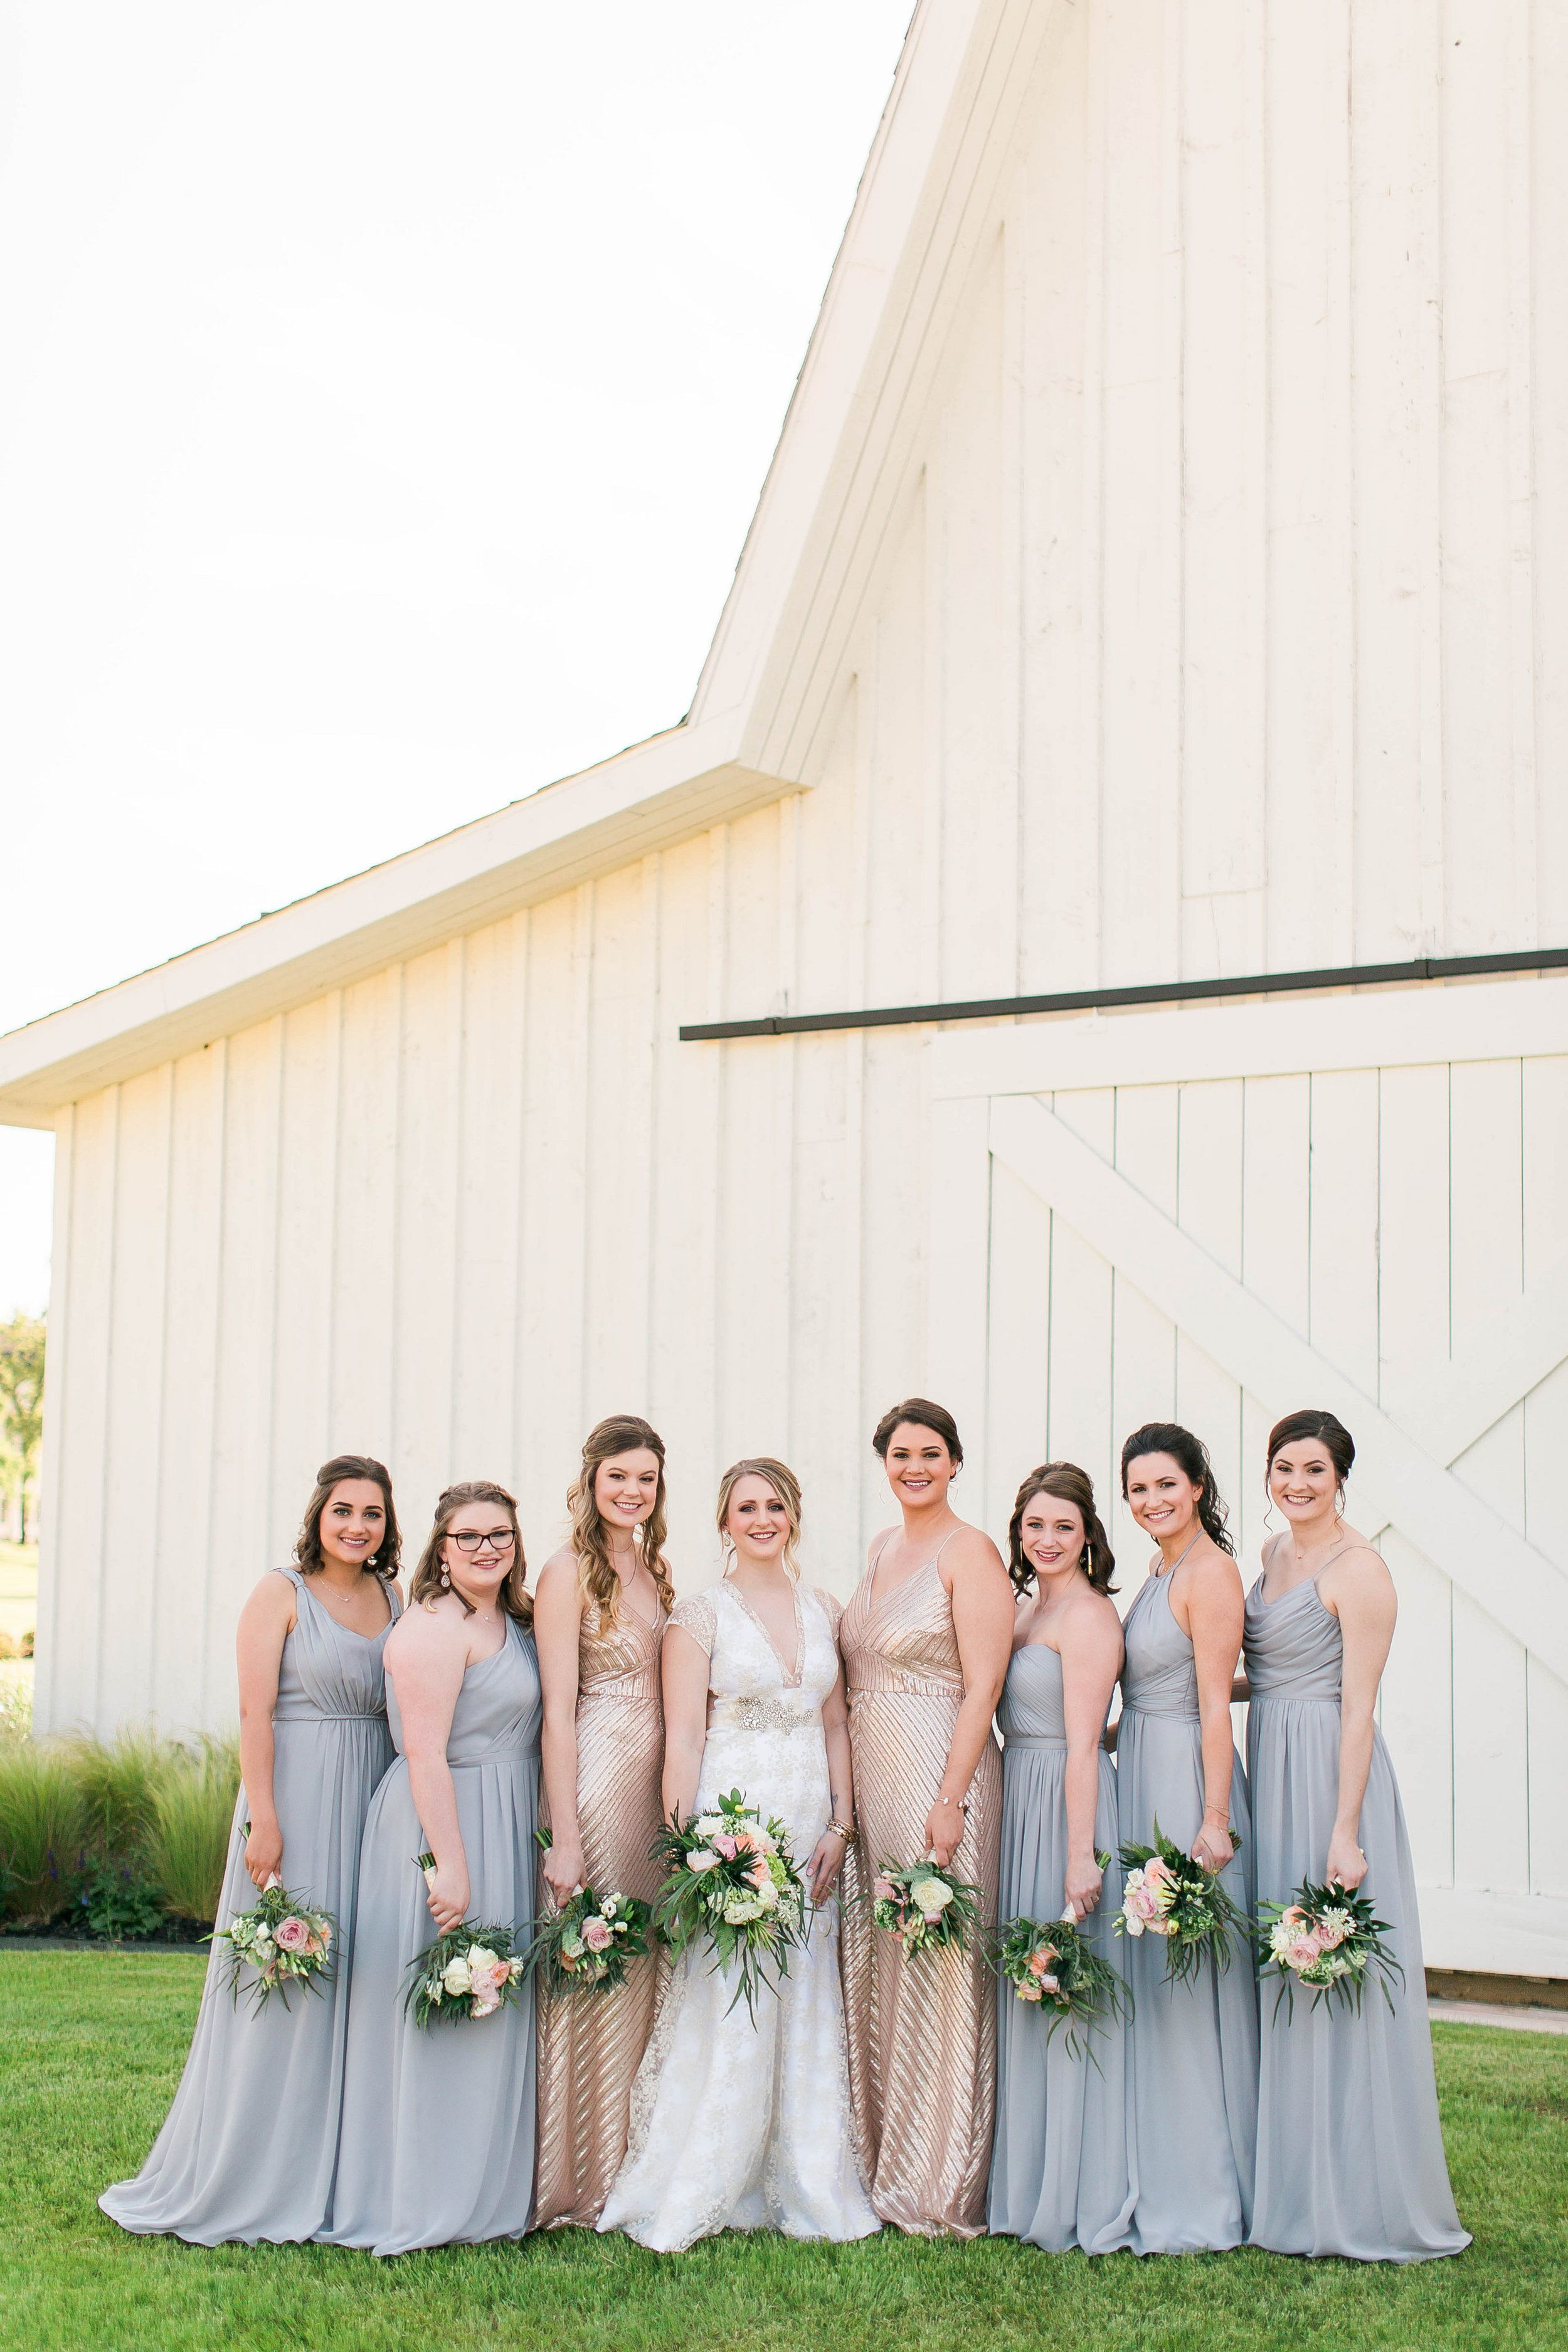 Rent Glass Vases for Wedding Of Bridesmaids Romantic Barn Wedding by Rent My Dust Bought so Pertaining to Romantic Barn Wedding by Rent My Dust Bought so Many